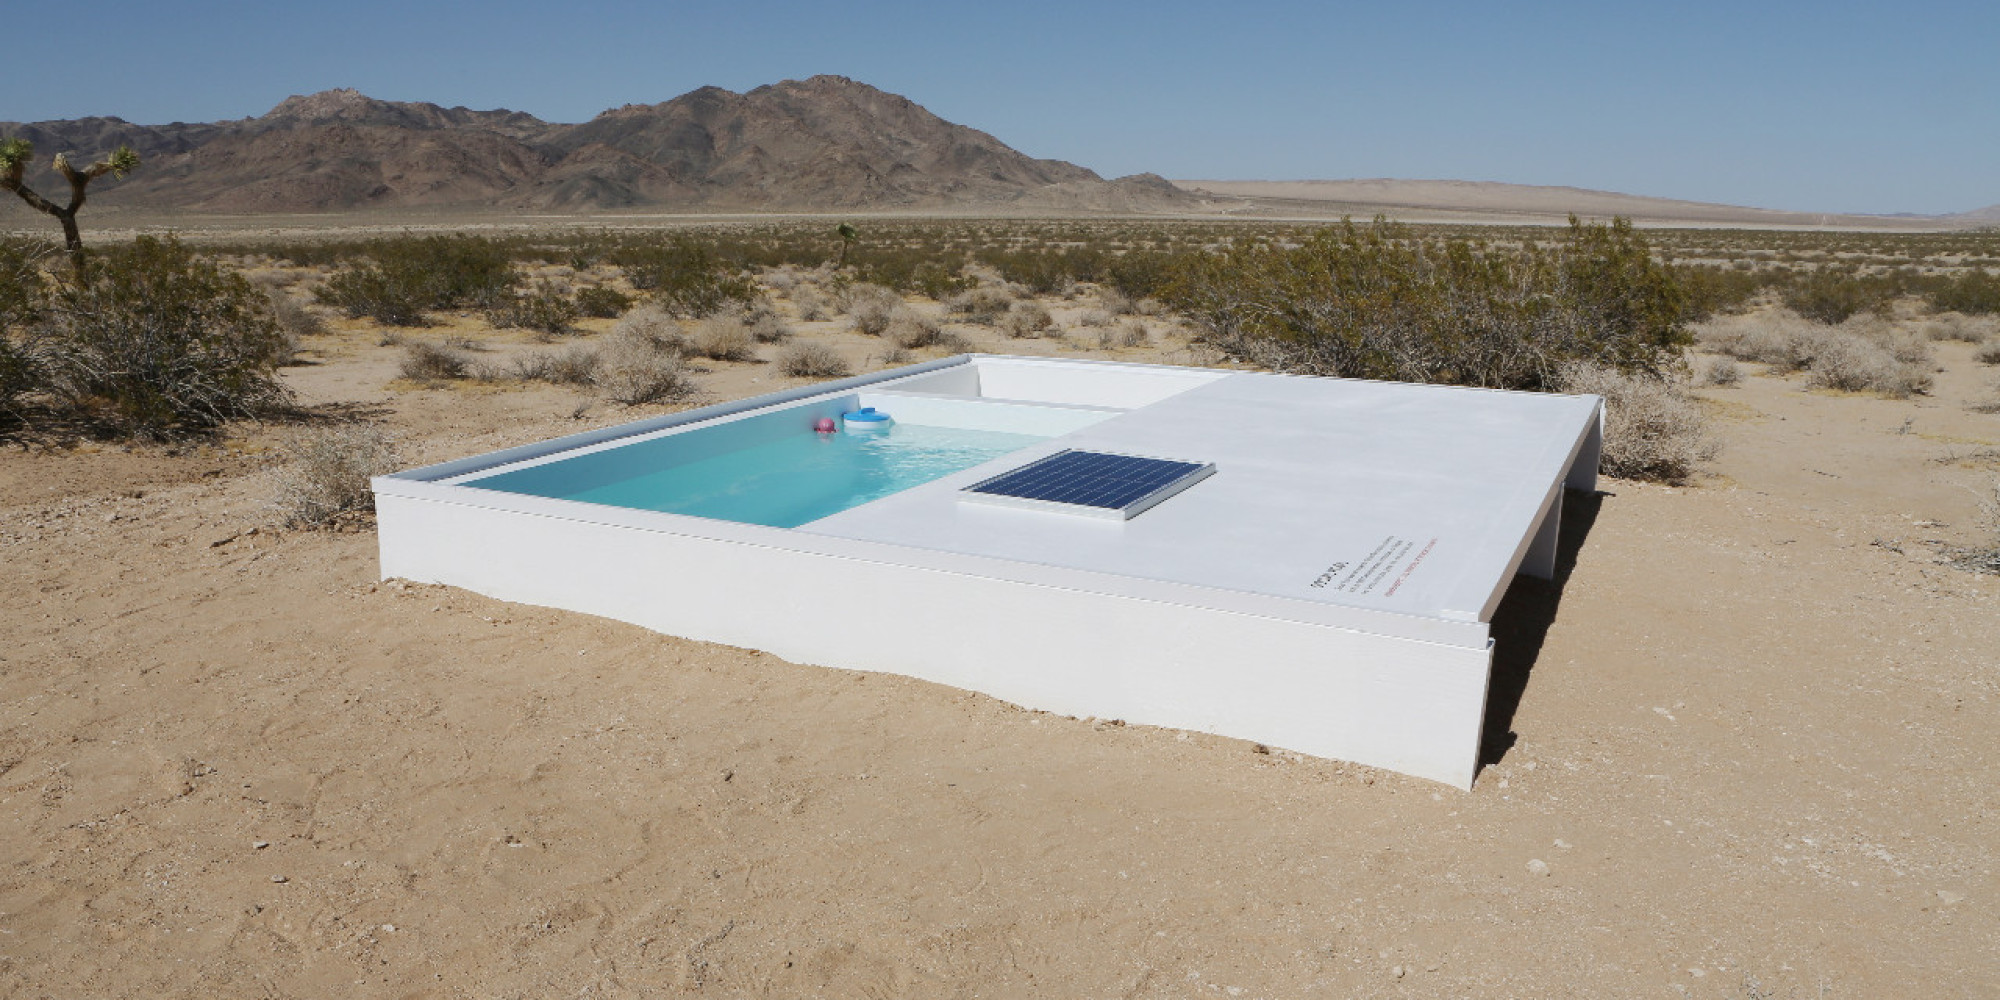 California Schwimmbad There 39s A Tiny Pool In The Middle Of The Mojave Desert